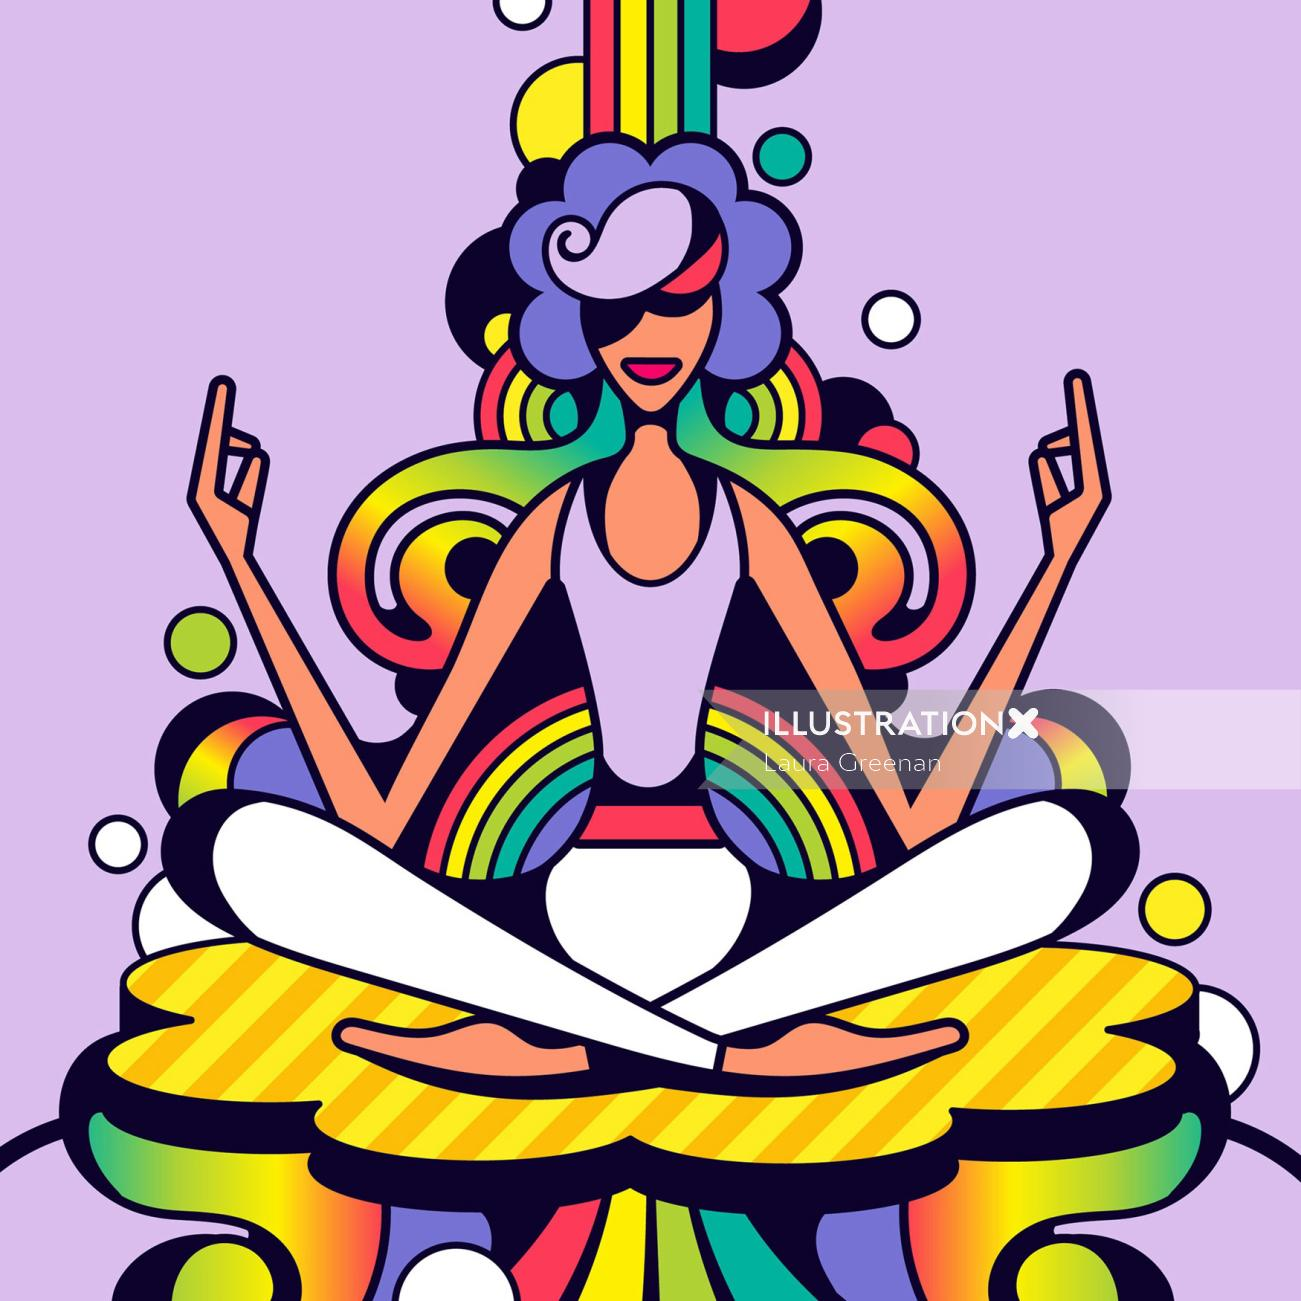 60s pop art style illustration of a woman practicing yoga.